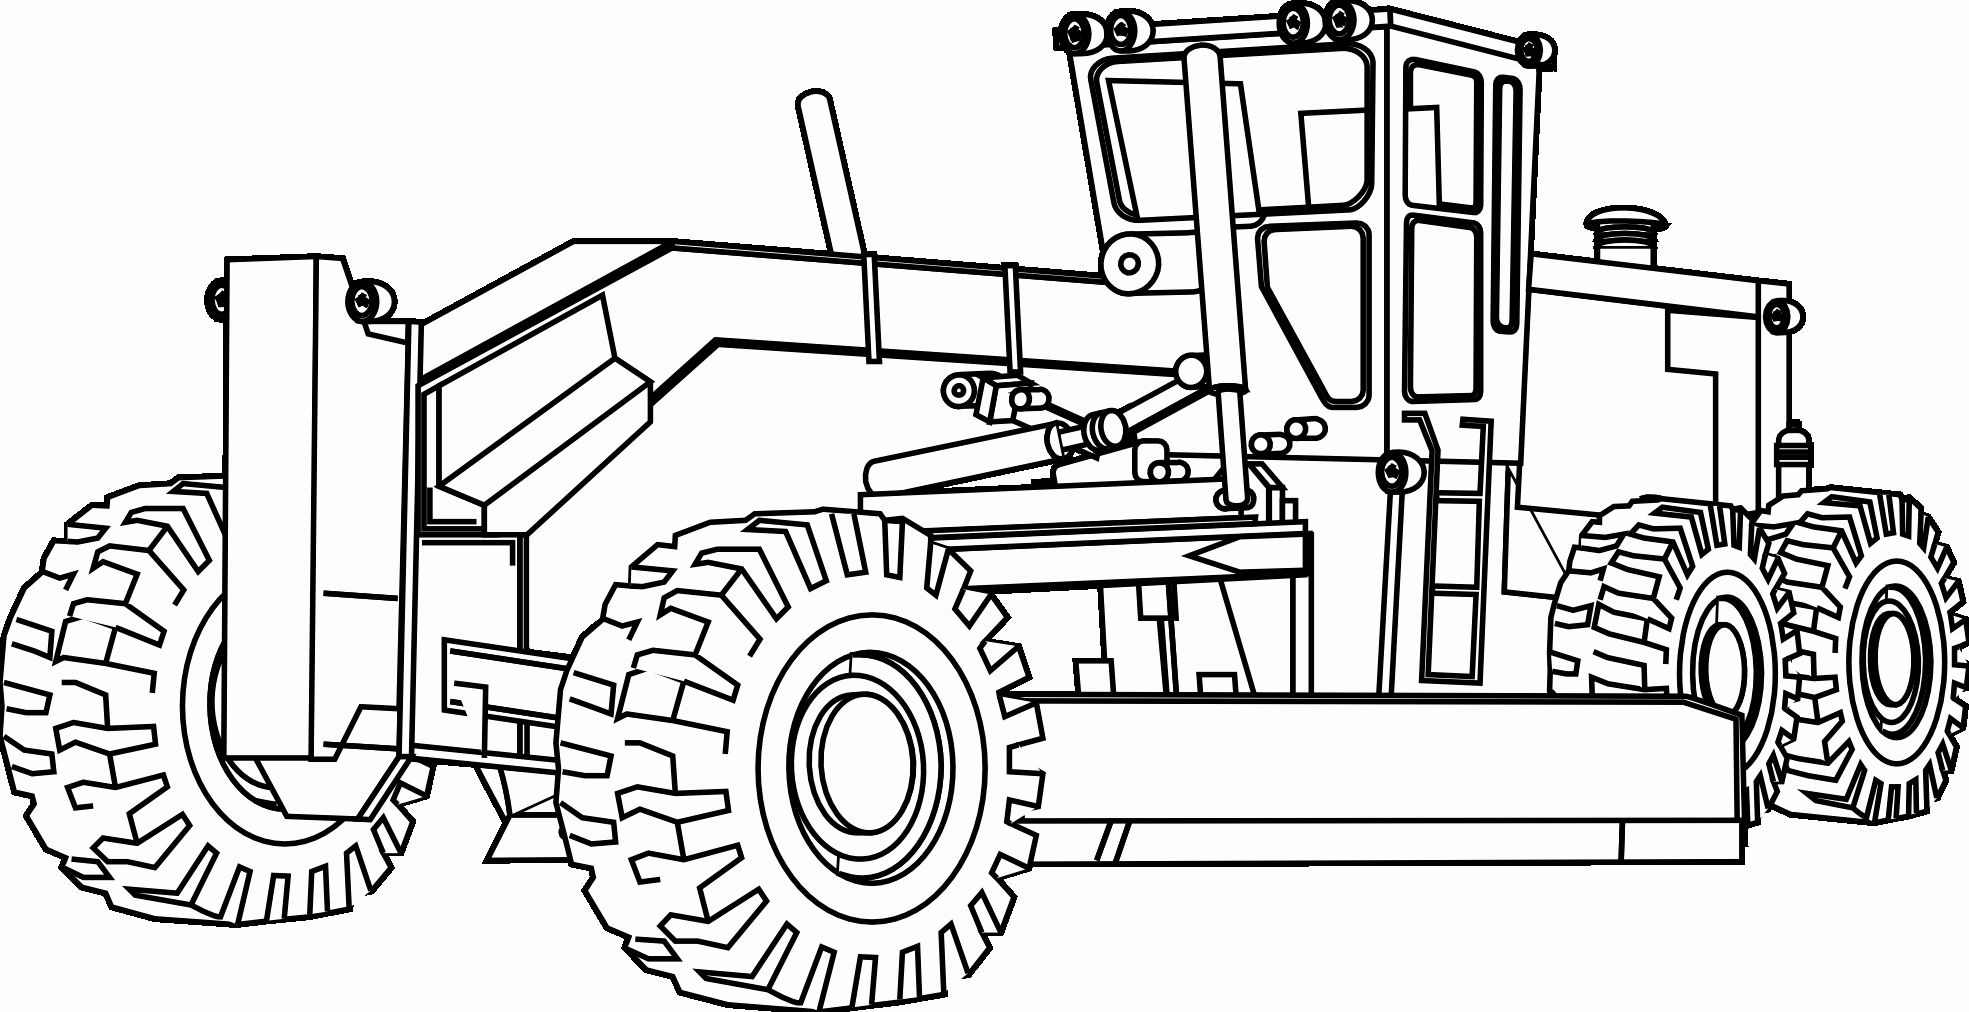 Ice Cream Truck Coloring Page New Dumptruck With Rocks Coloring Pages Tractor Coloring Pages Truck Coloring Pages Coloring Pages